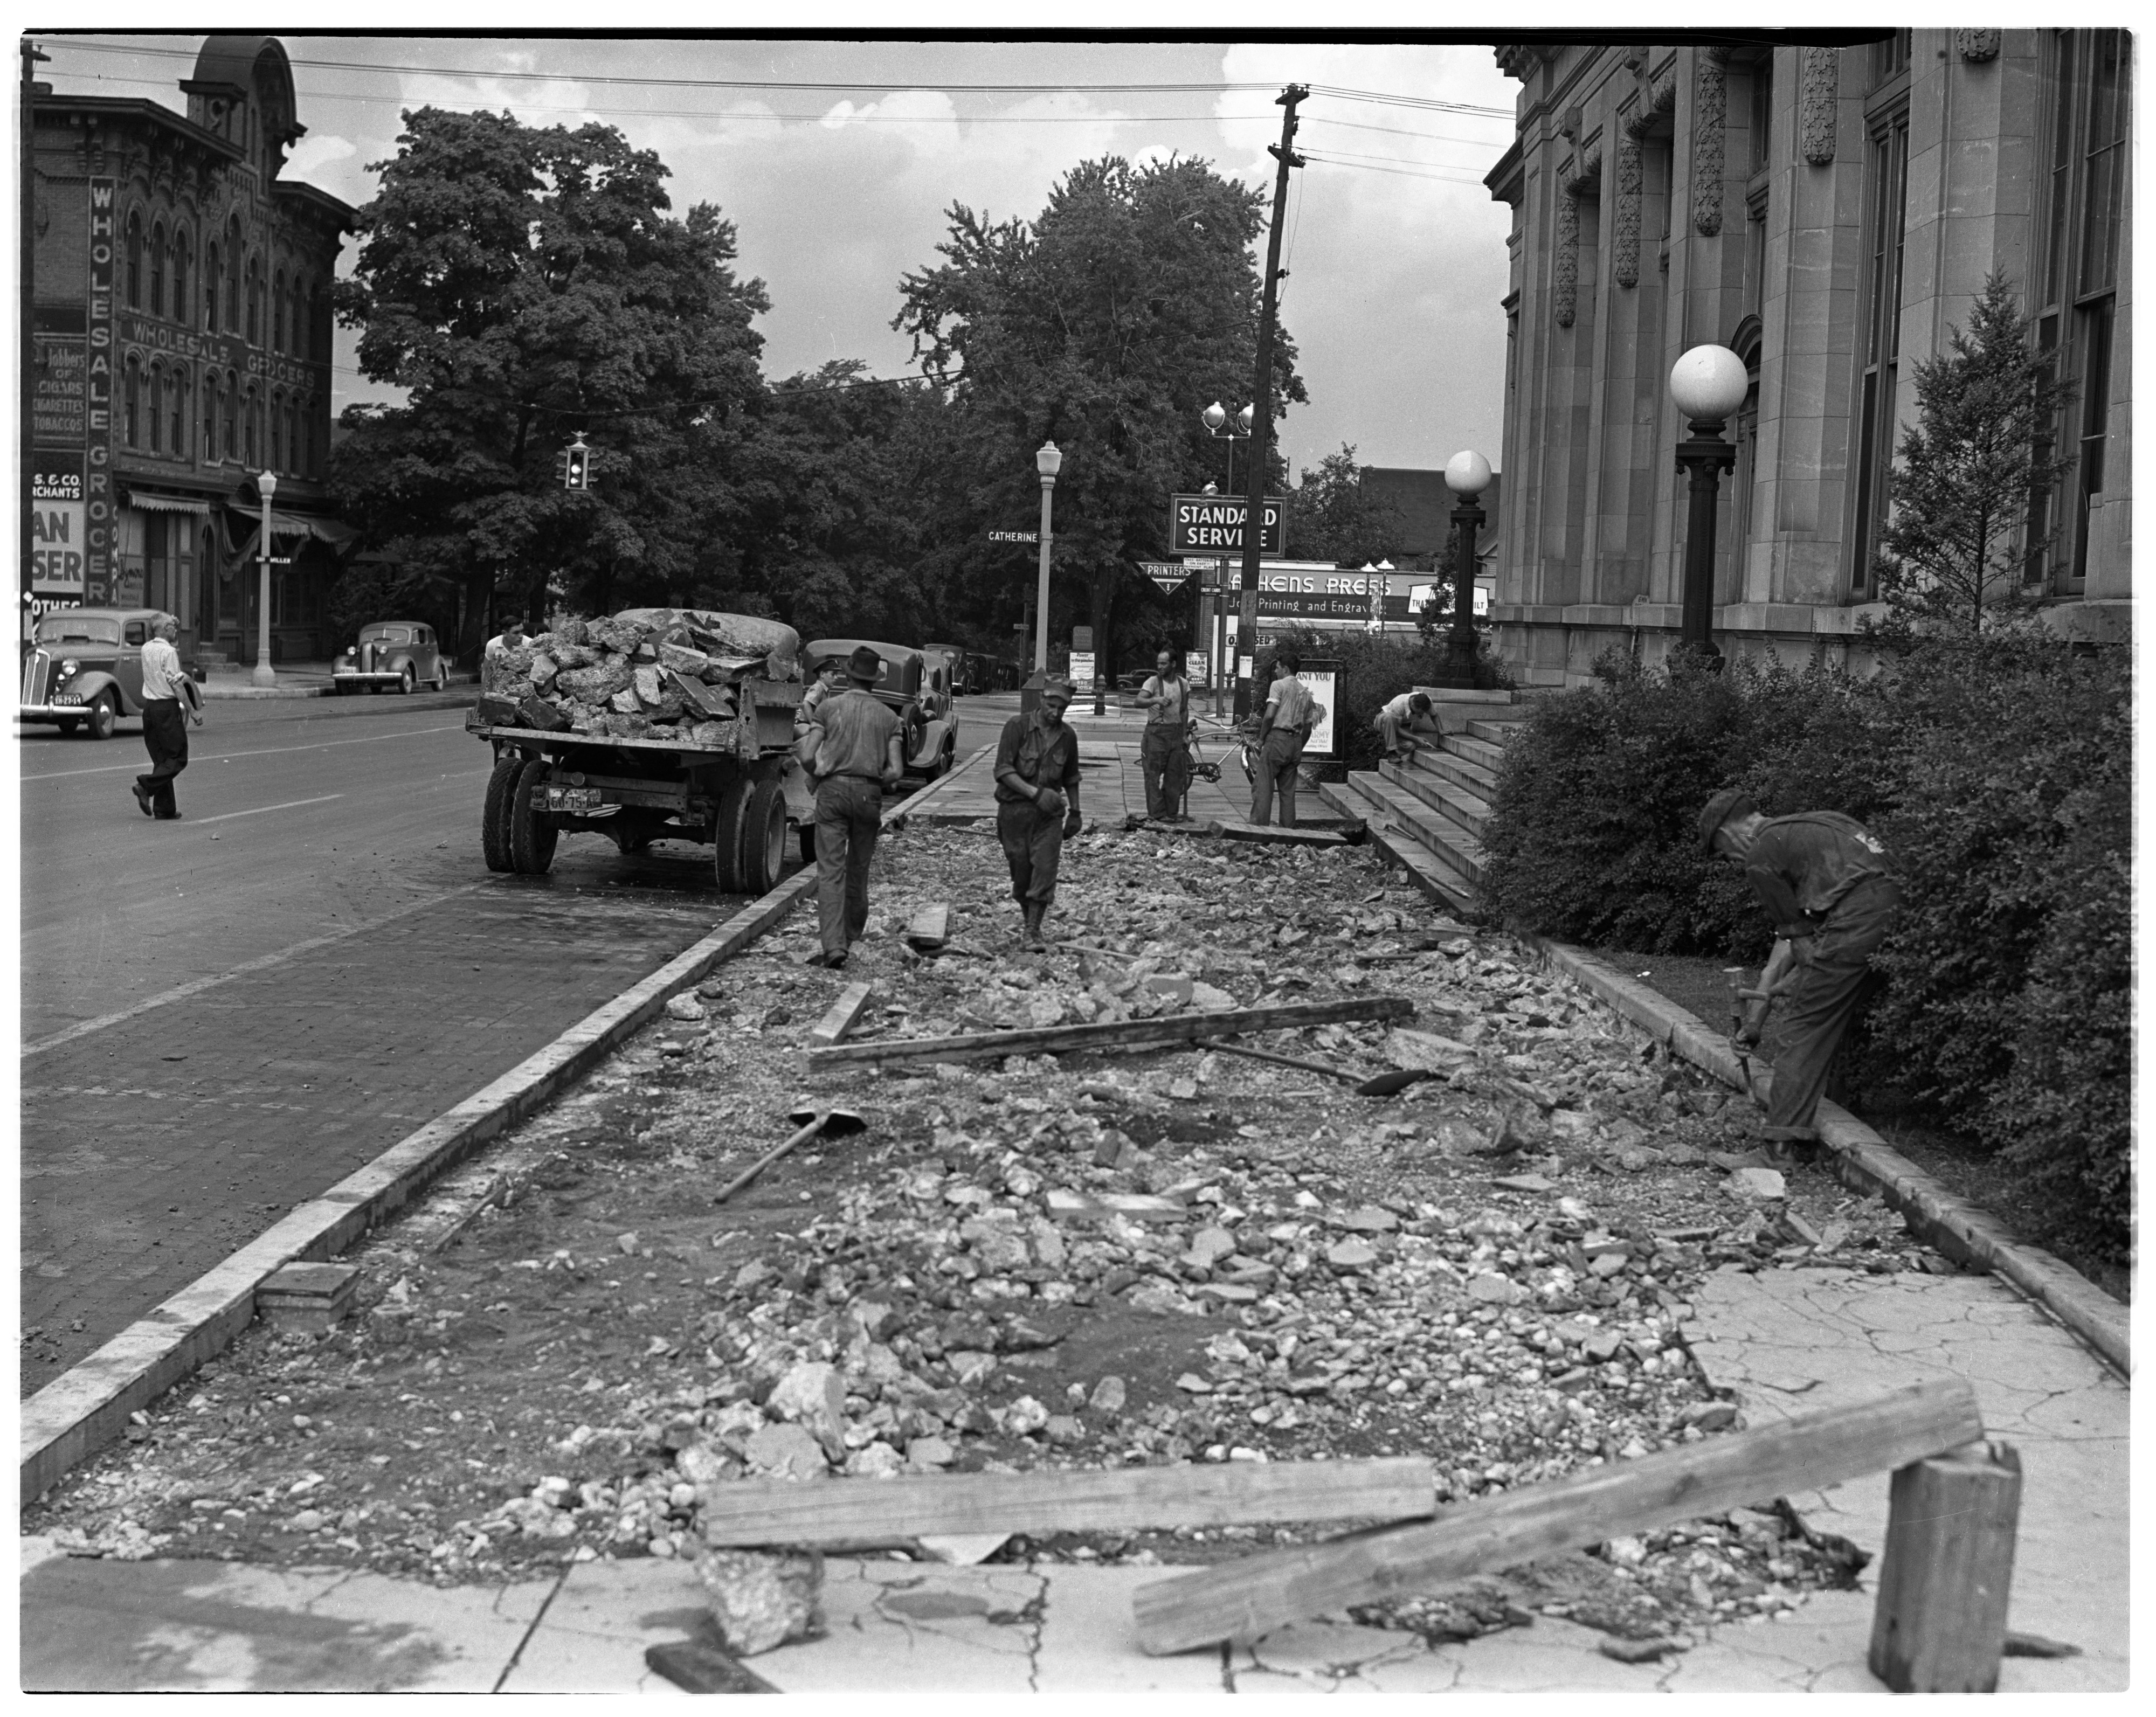 Ann Arbor Post Office Gets New Sidewalk, 1940 image